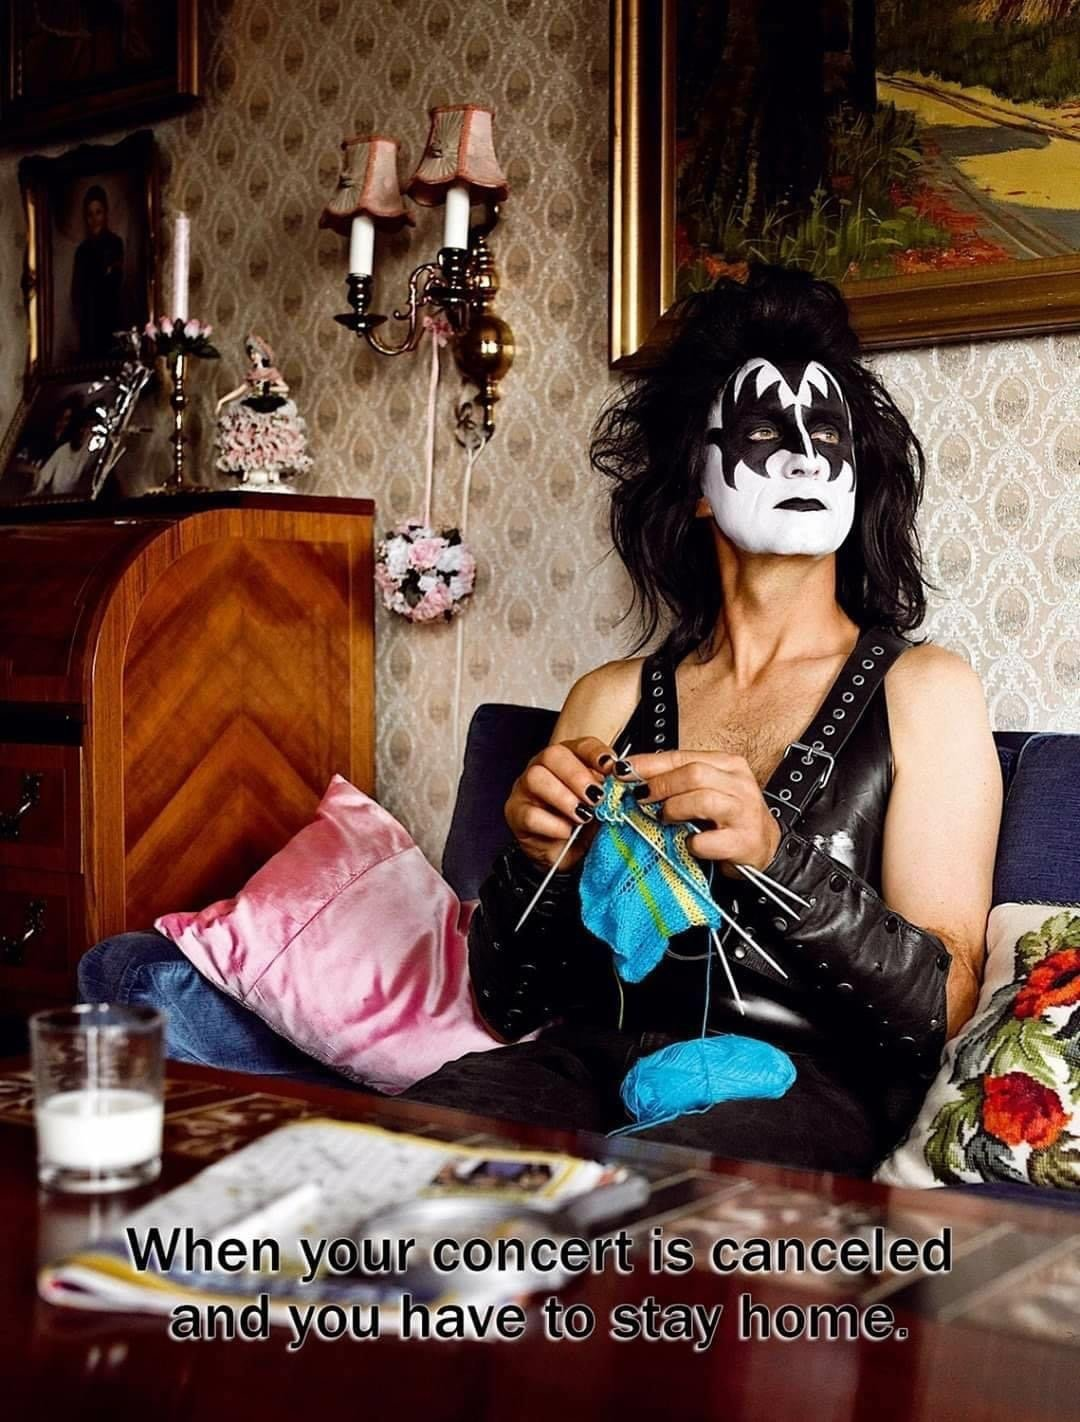 When your concert is canceled and you have to stay home KISS meme